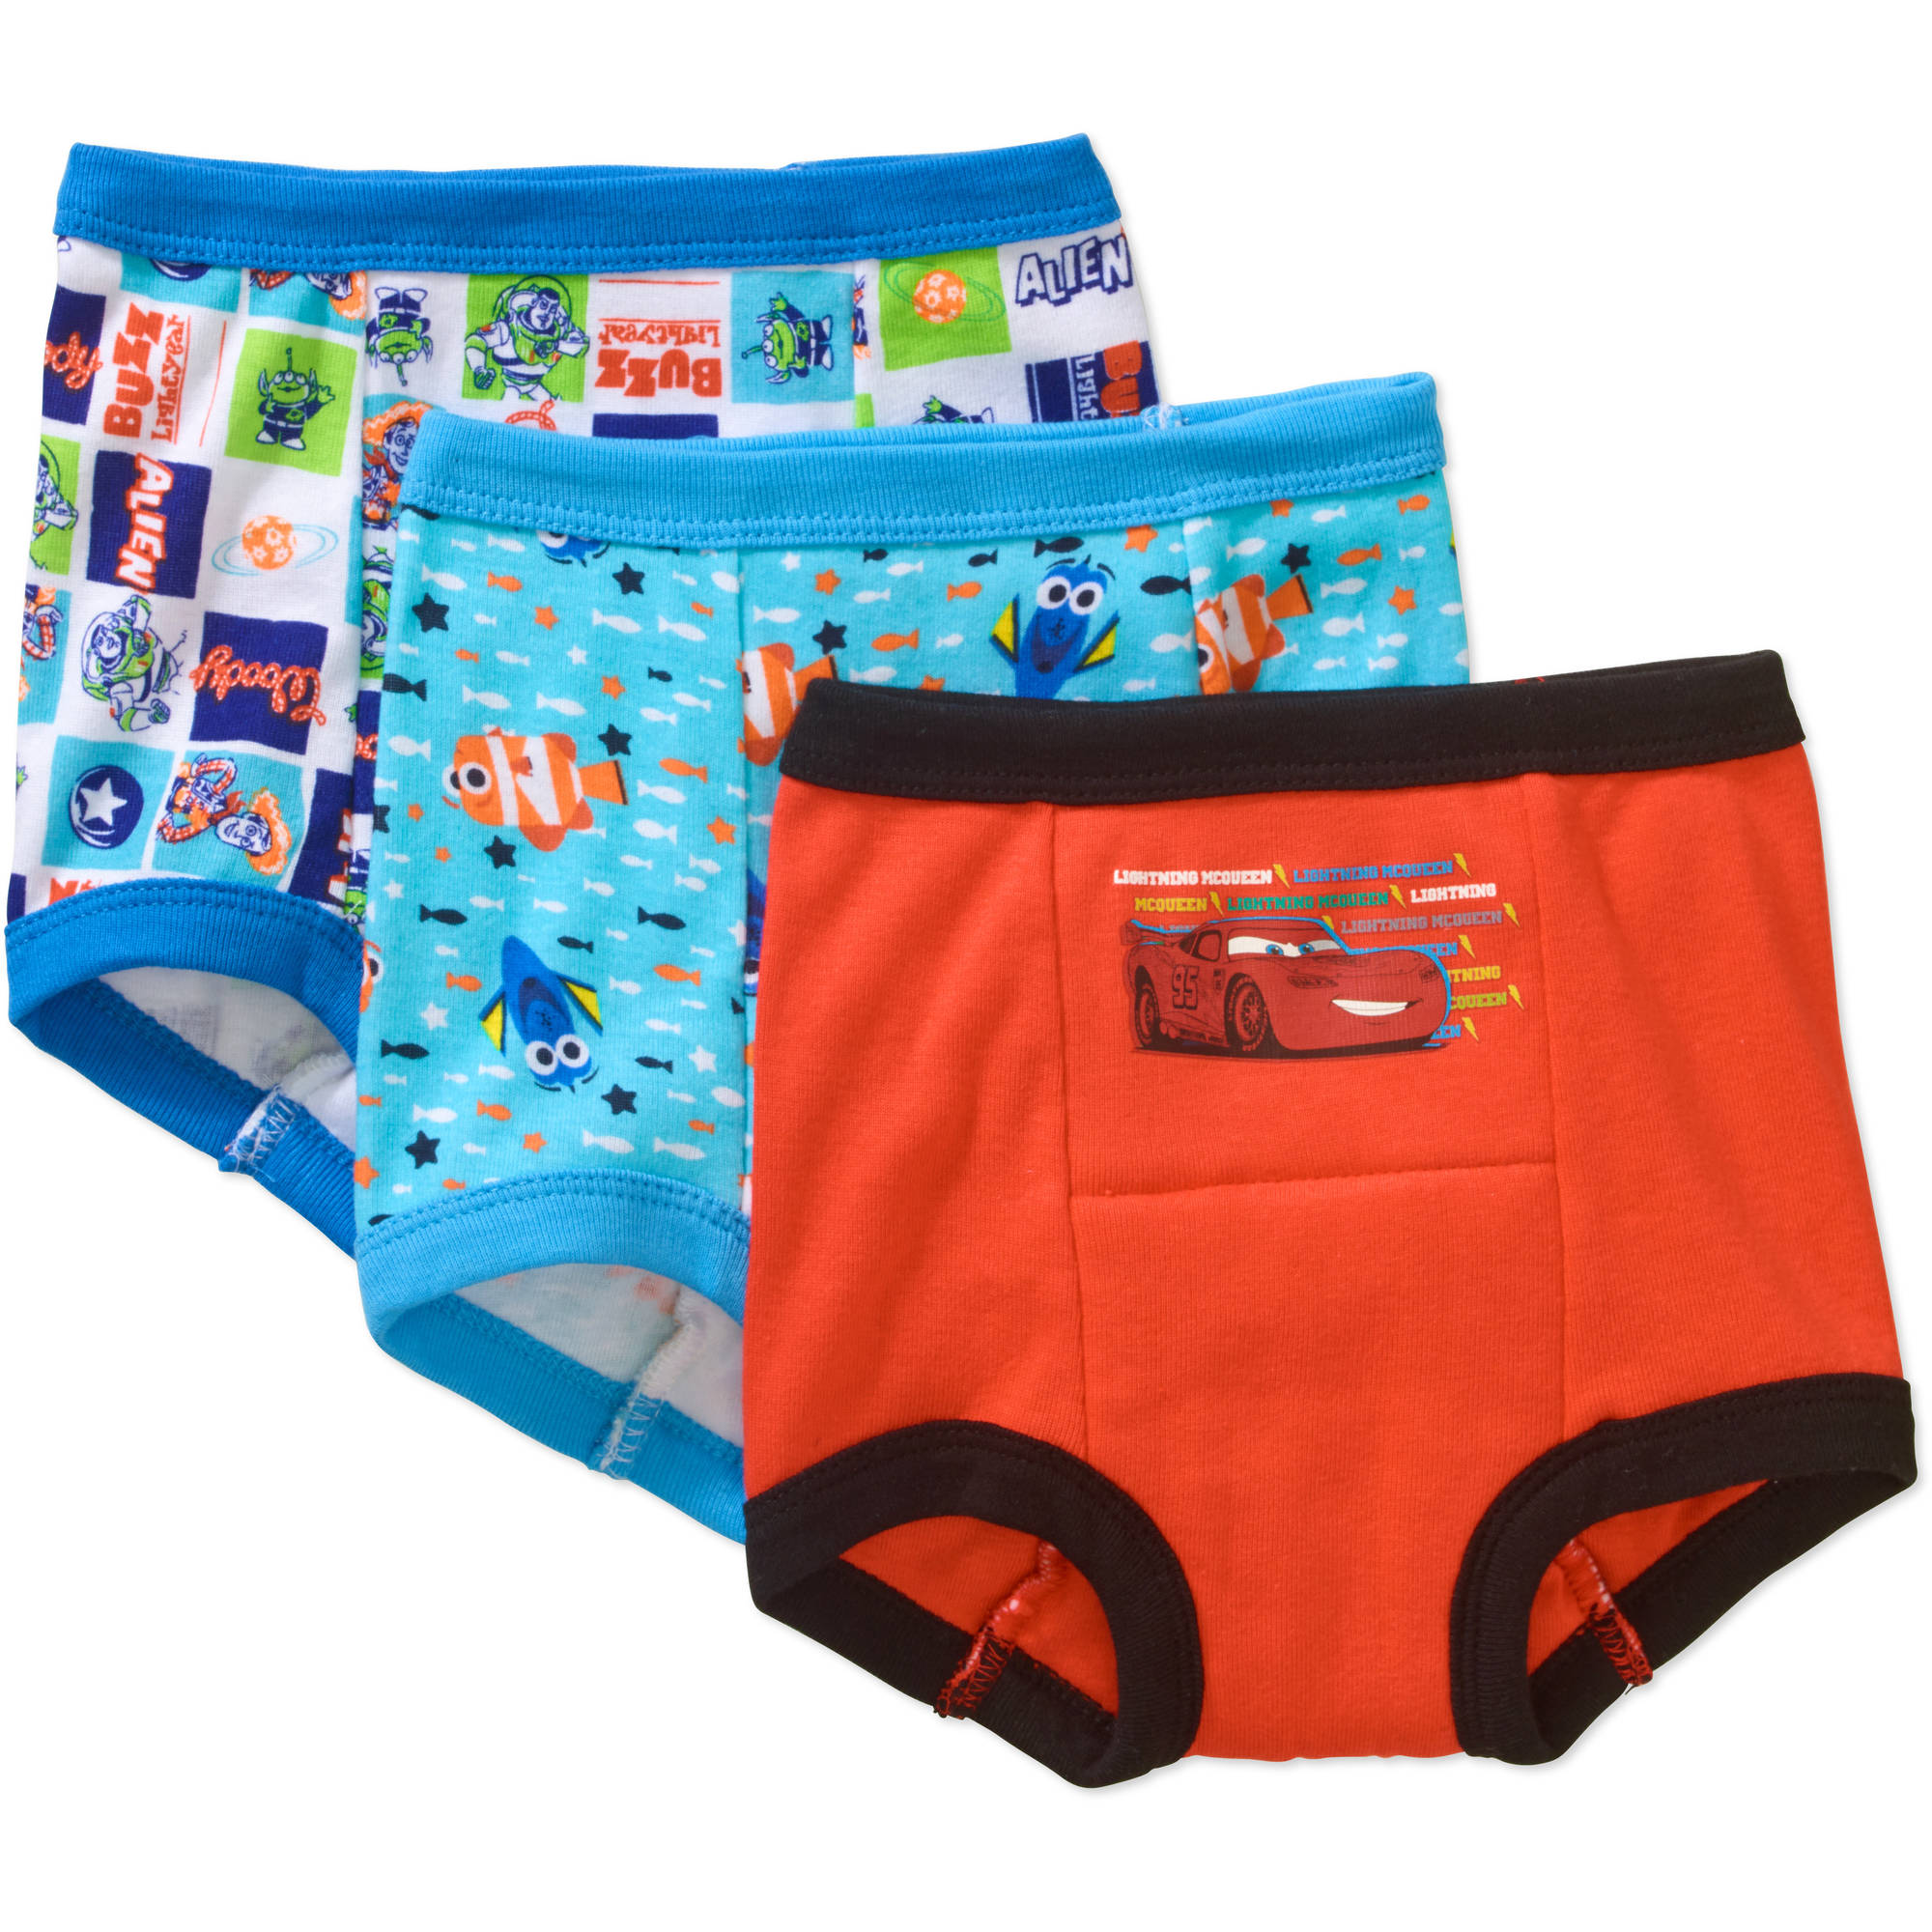 Pixar Toddler Boys' Training Pants, 3 Pack